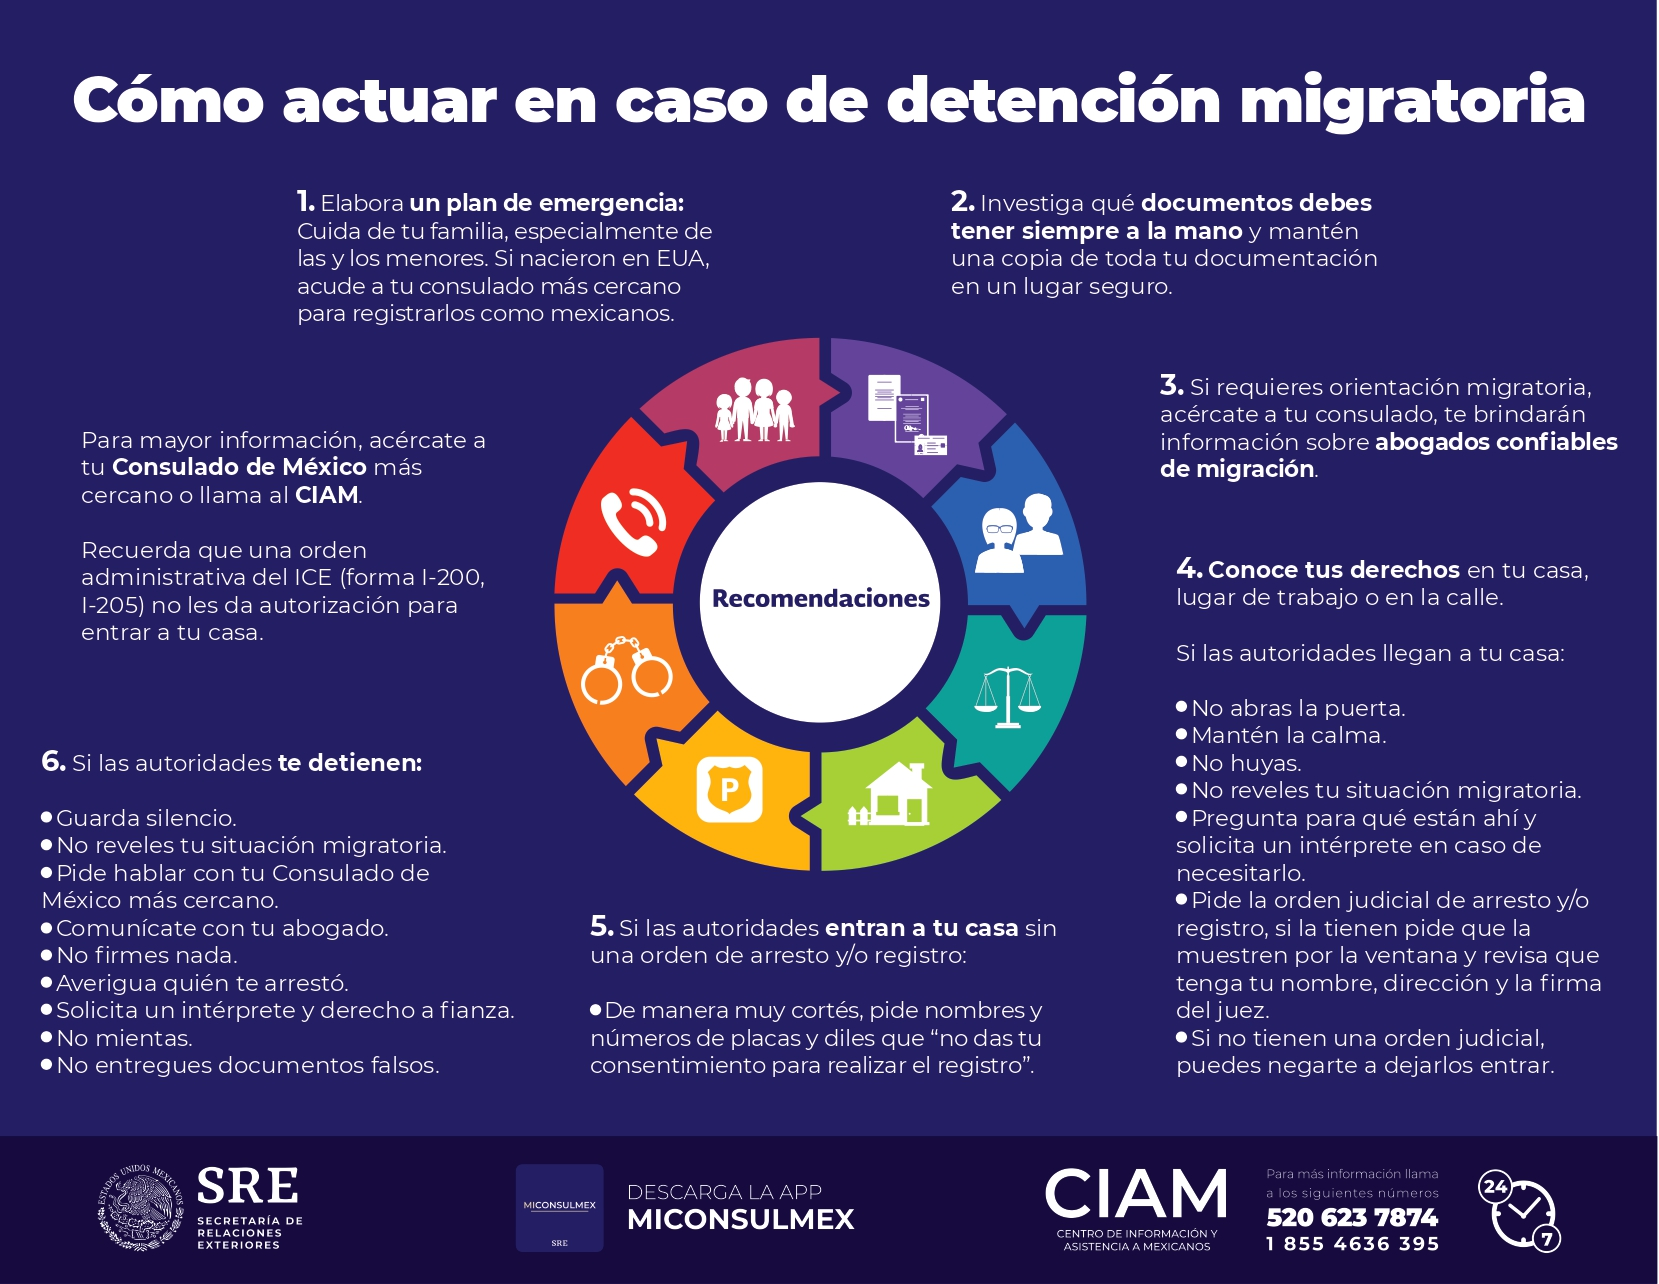 Detencion migratoria caim